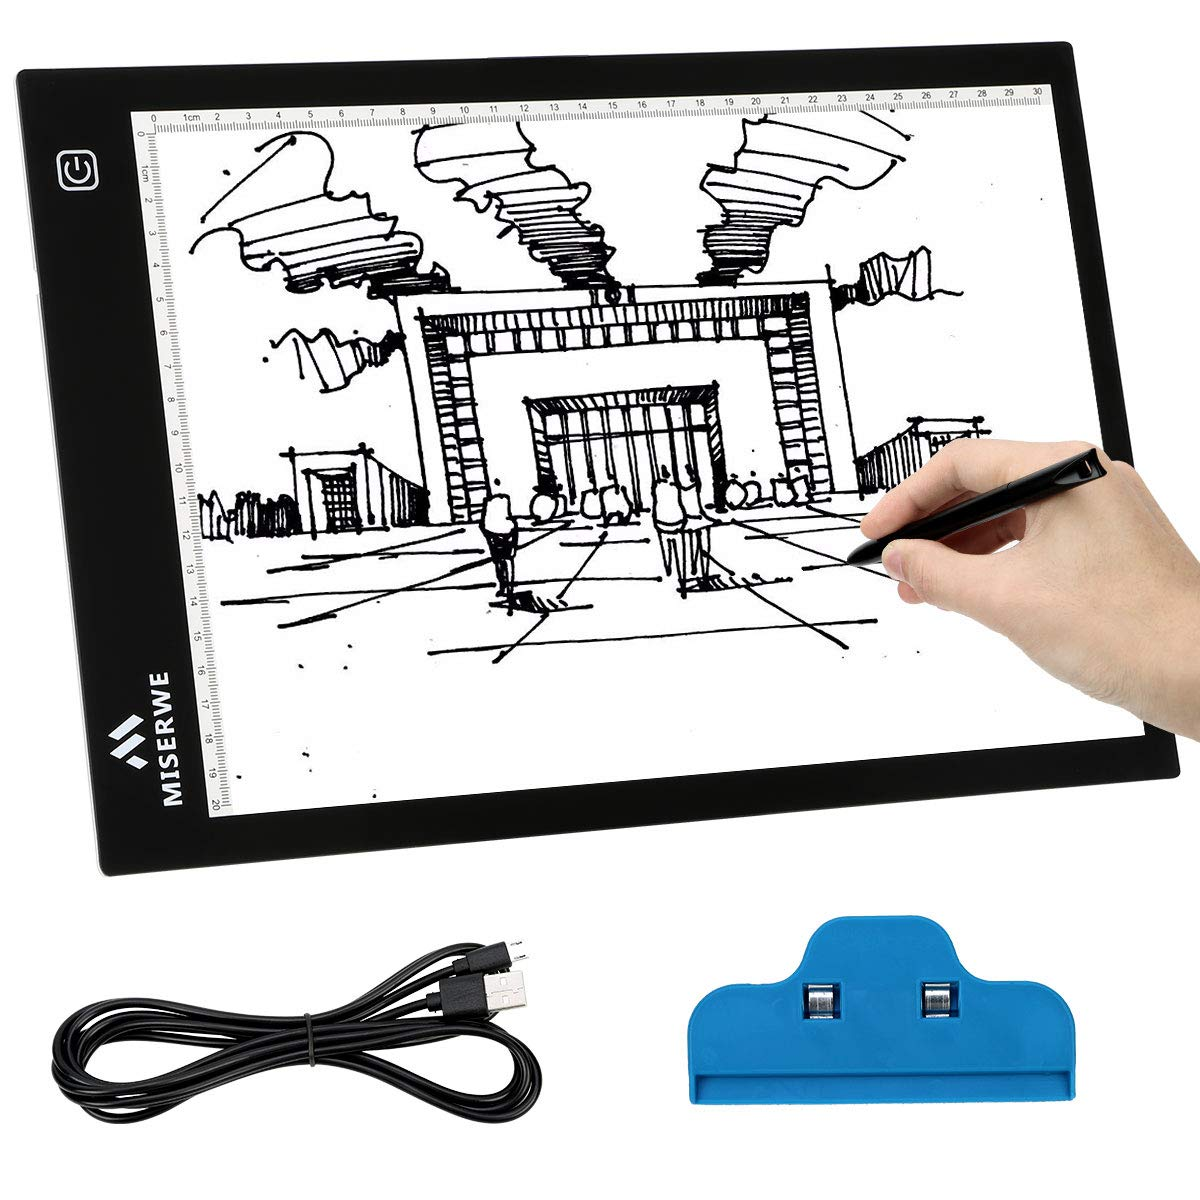 MISERWE A4 Light Table 4.7mm Ultra-Thin USB Powered Portable LED Light Box Artcraft Tracing pad for Sketching Artists Drawing Animation Stencilling X-rayViewing by MISERWE